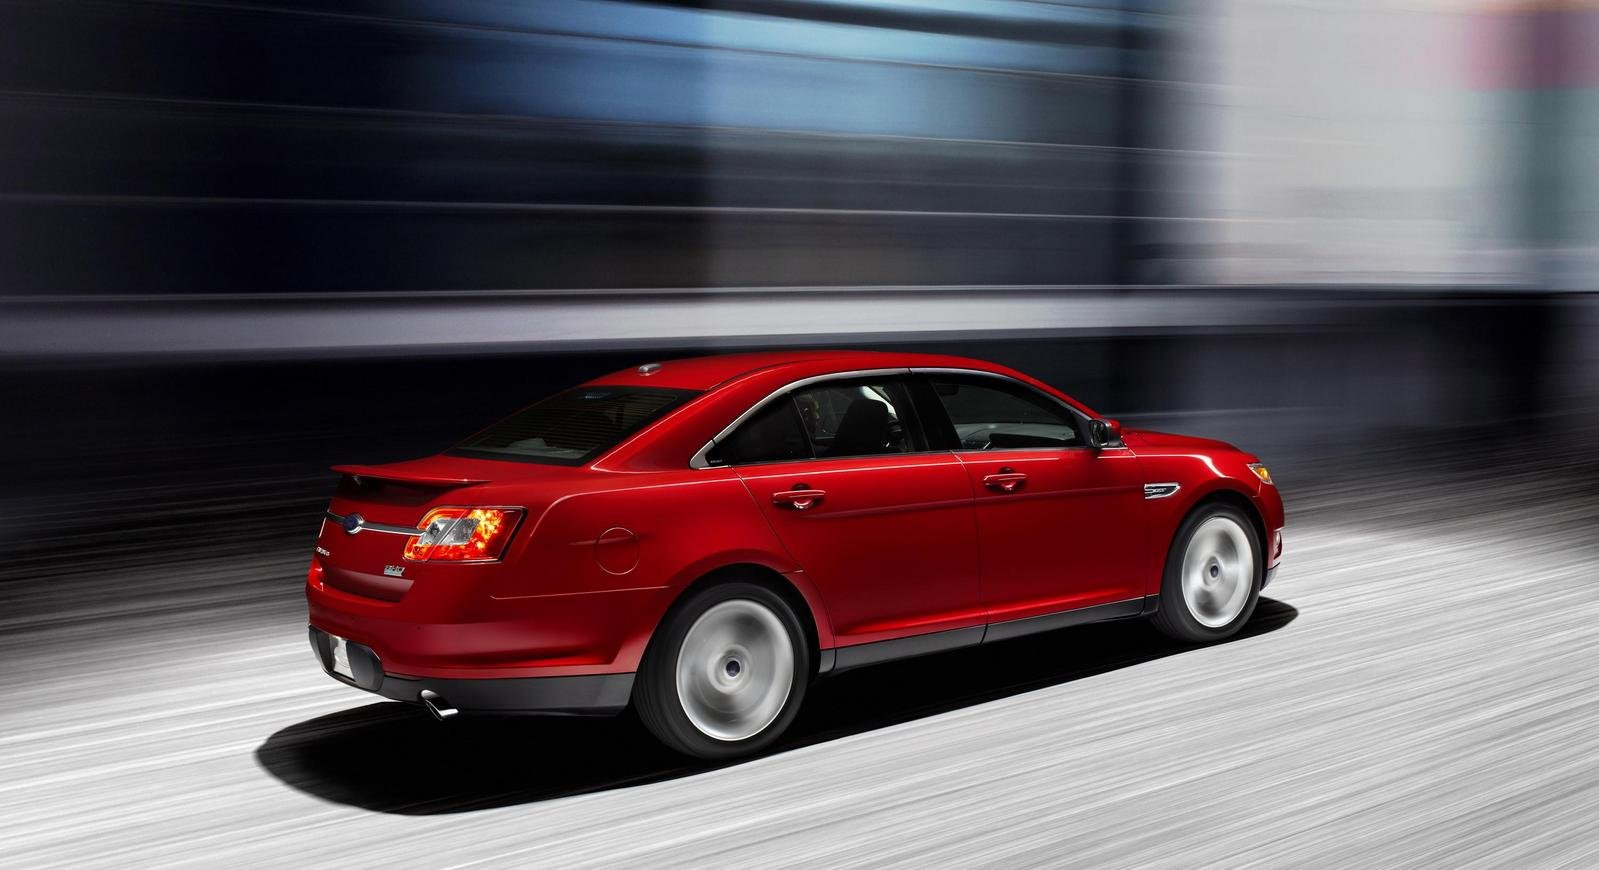 2010 ford taurus sho picture 285156 car review top speed. Black Bedroom Furniture Sets. Home Design Ideas